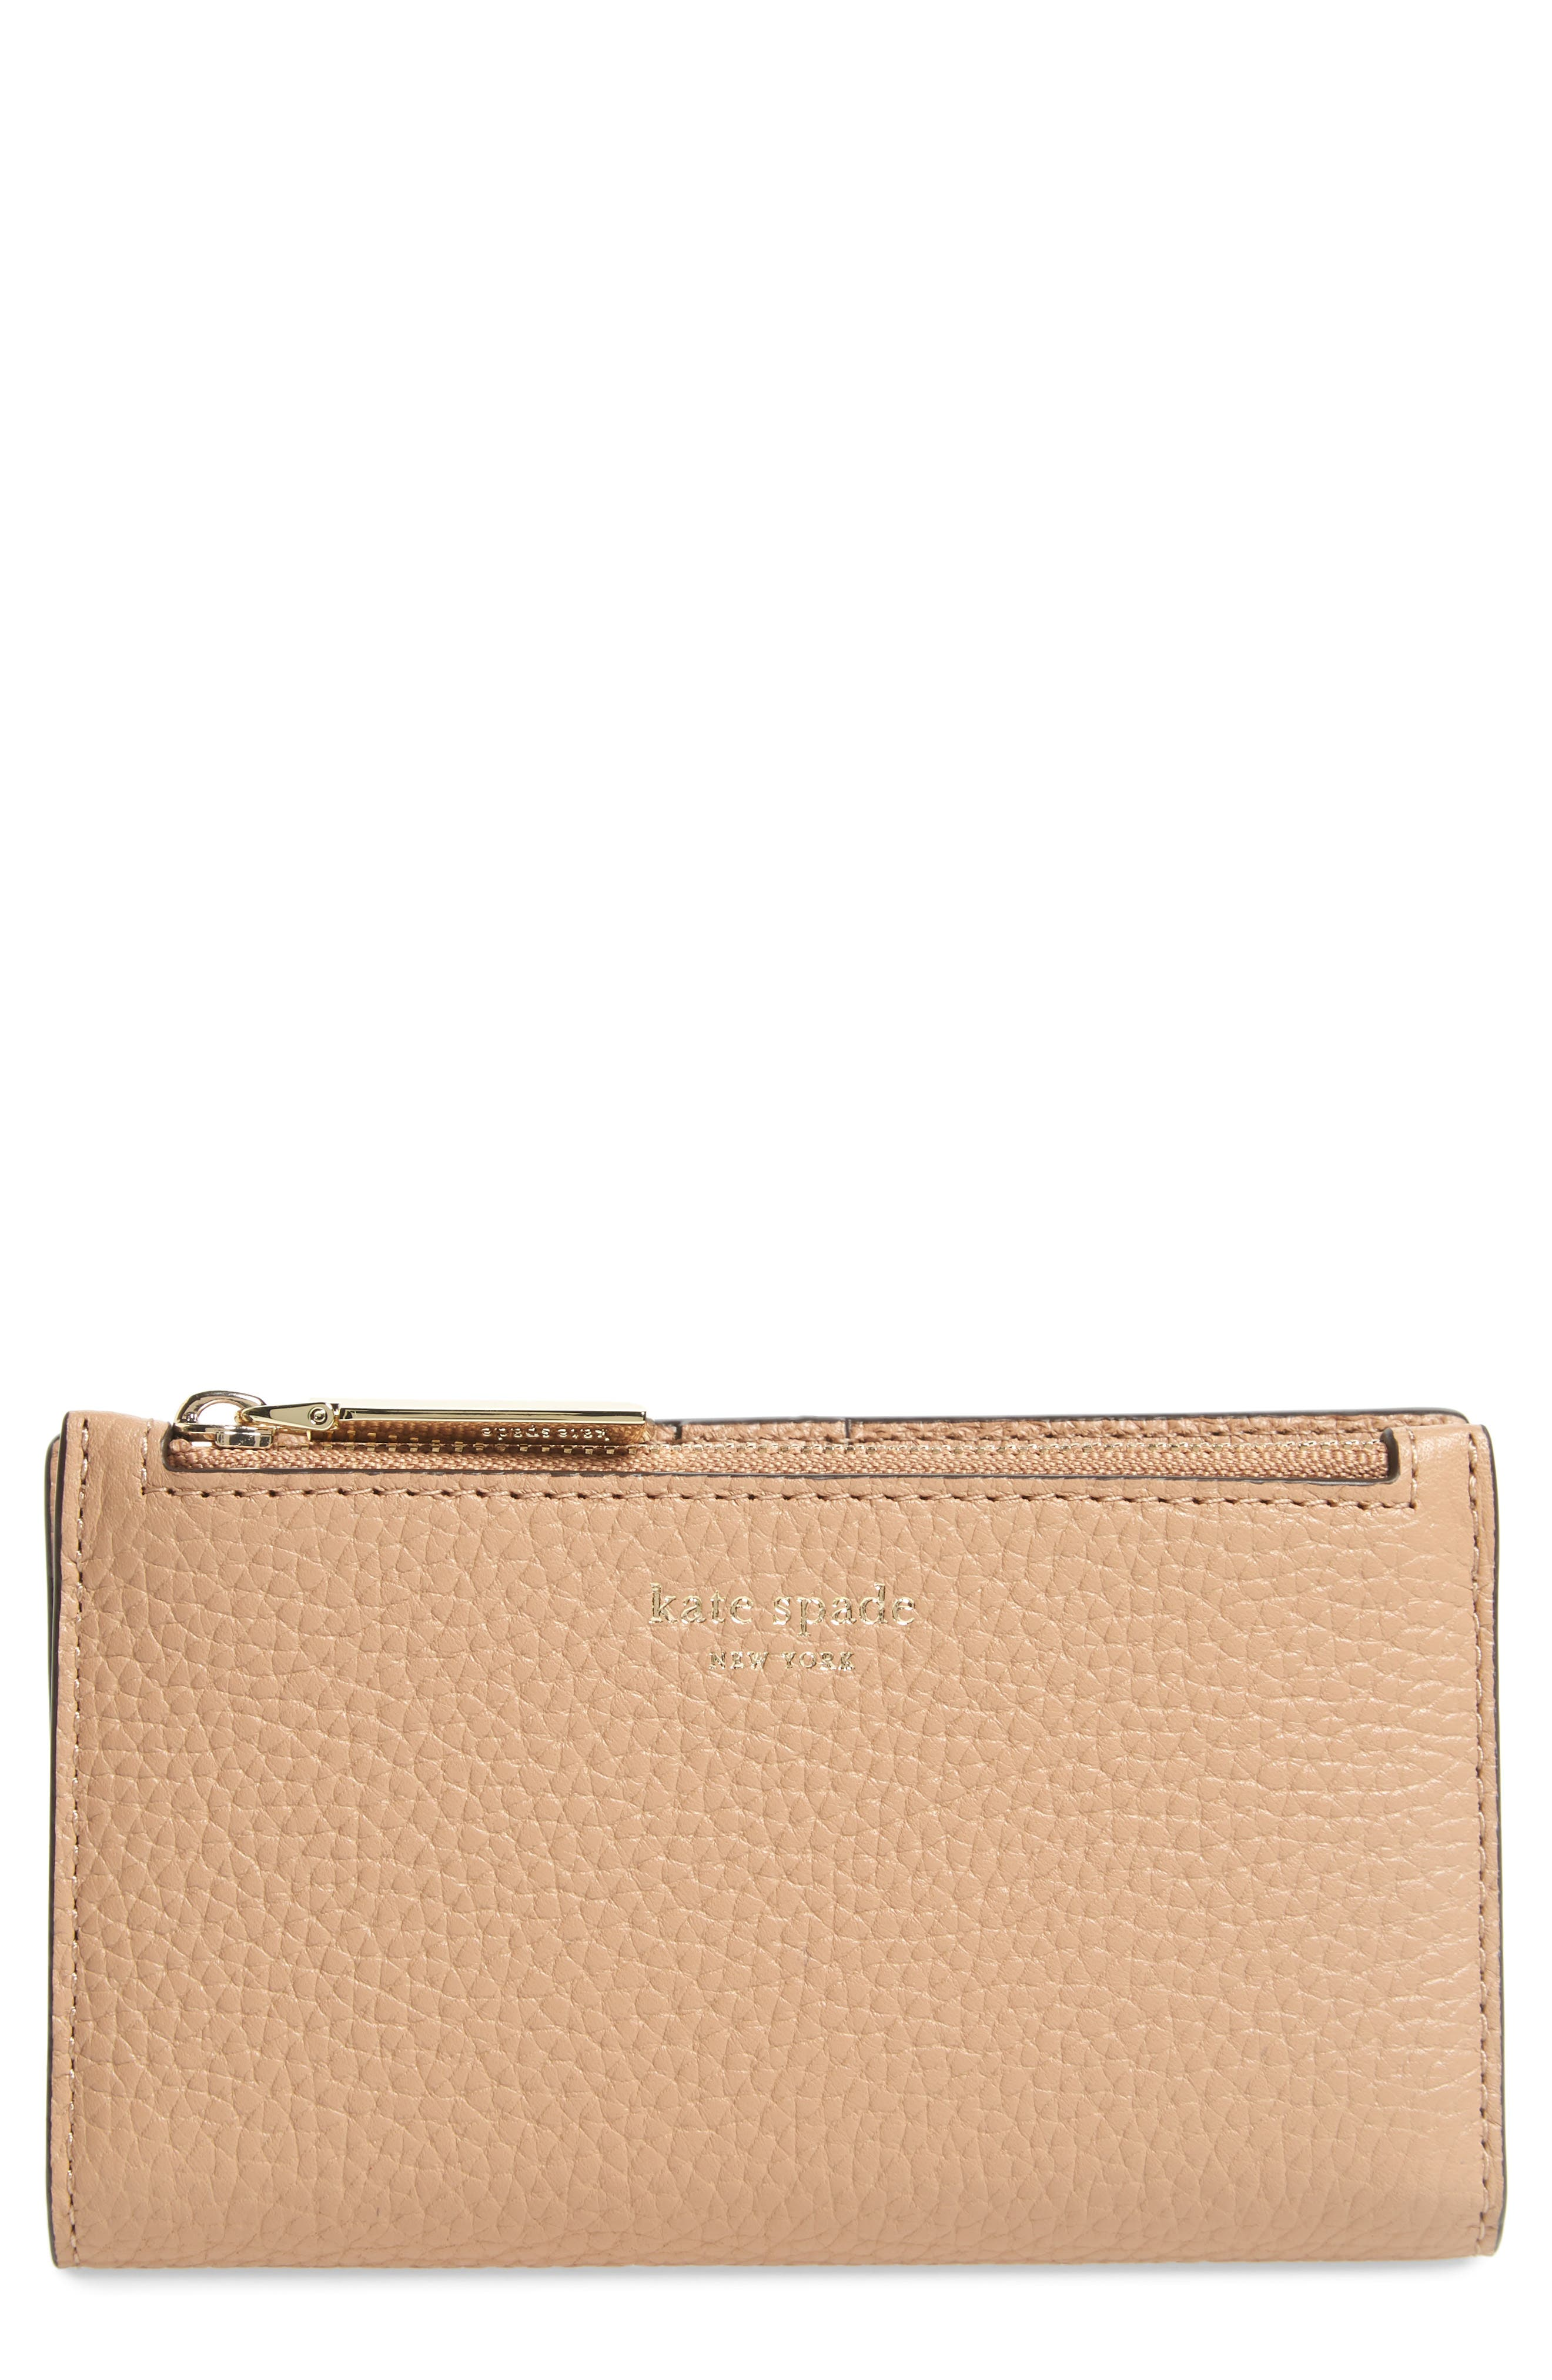 72e98e3551adde Women's Wallets Sale | Nordstrom